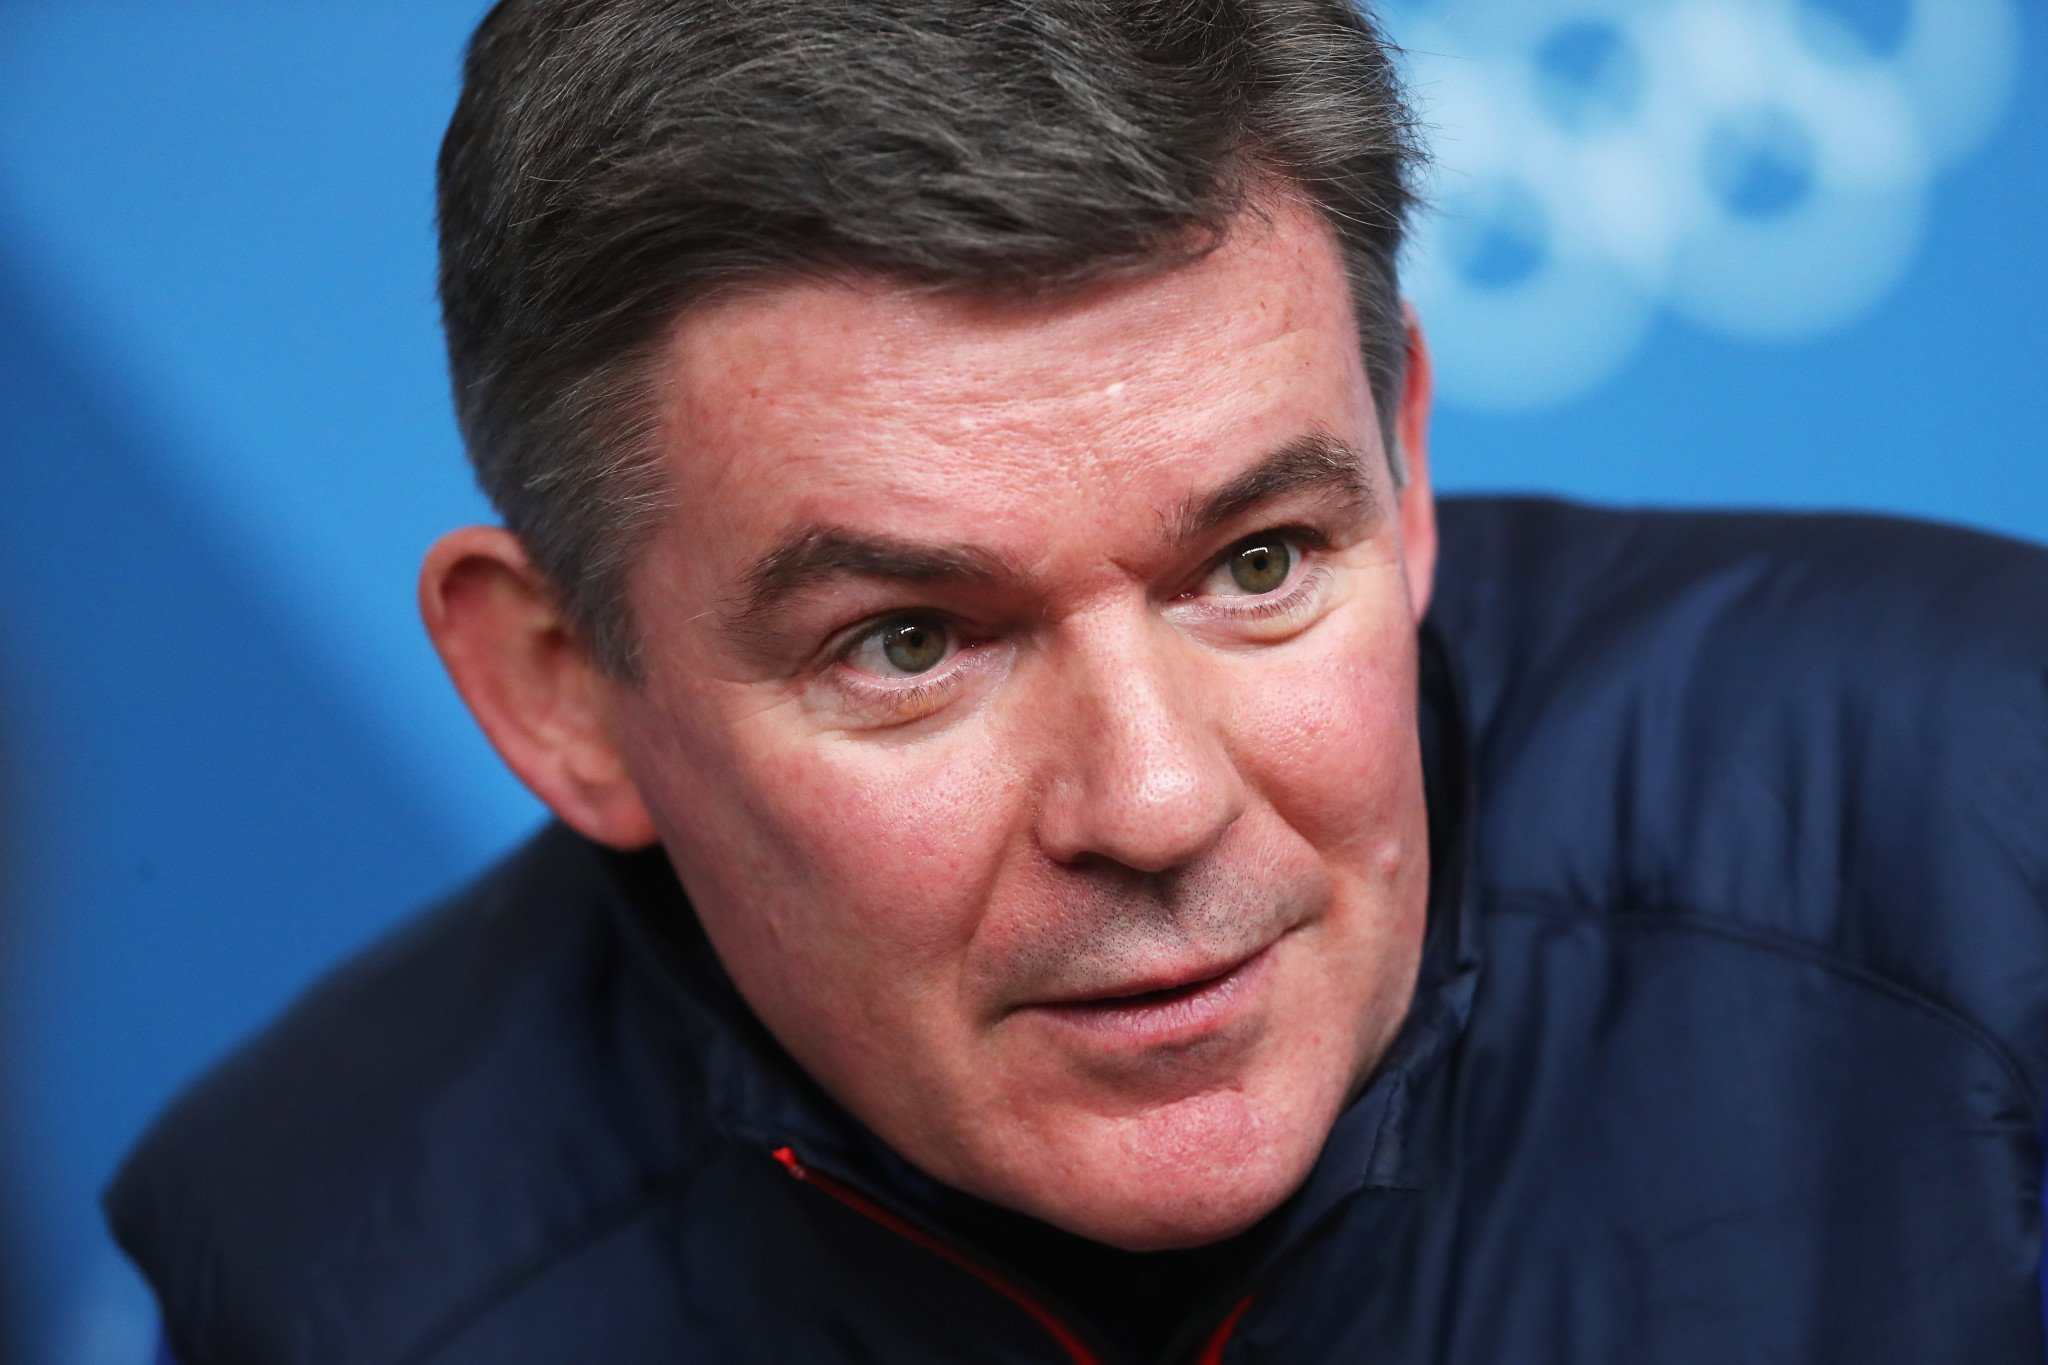 Sir Hugh Robertson is set to chair the World Rugby independent-led governance review  ©Getty Images